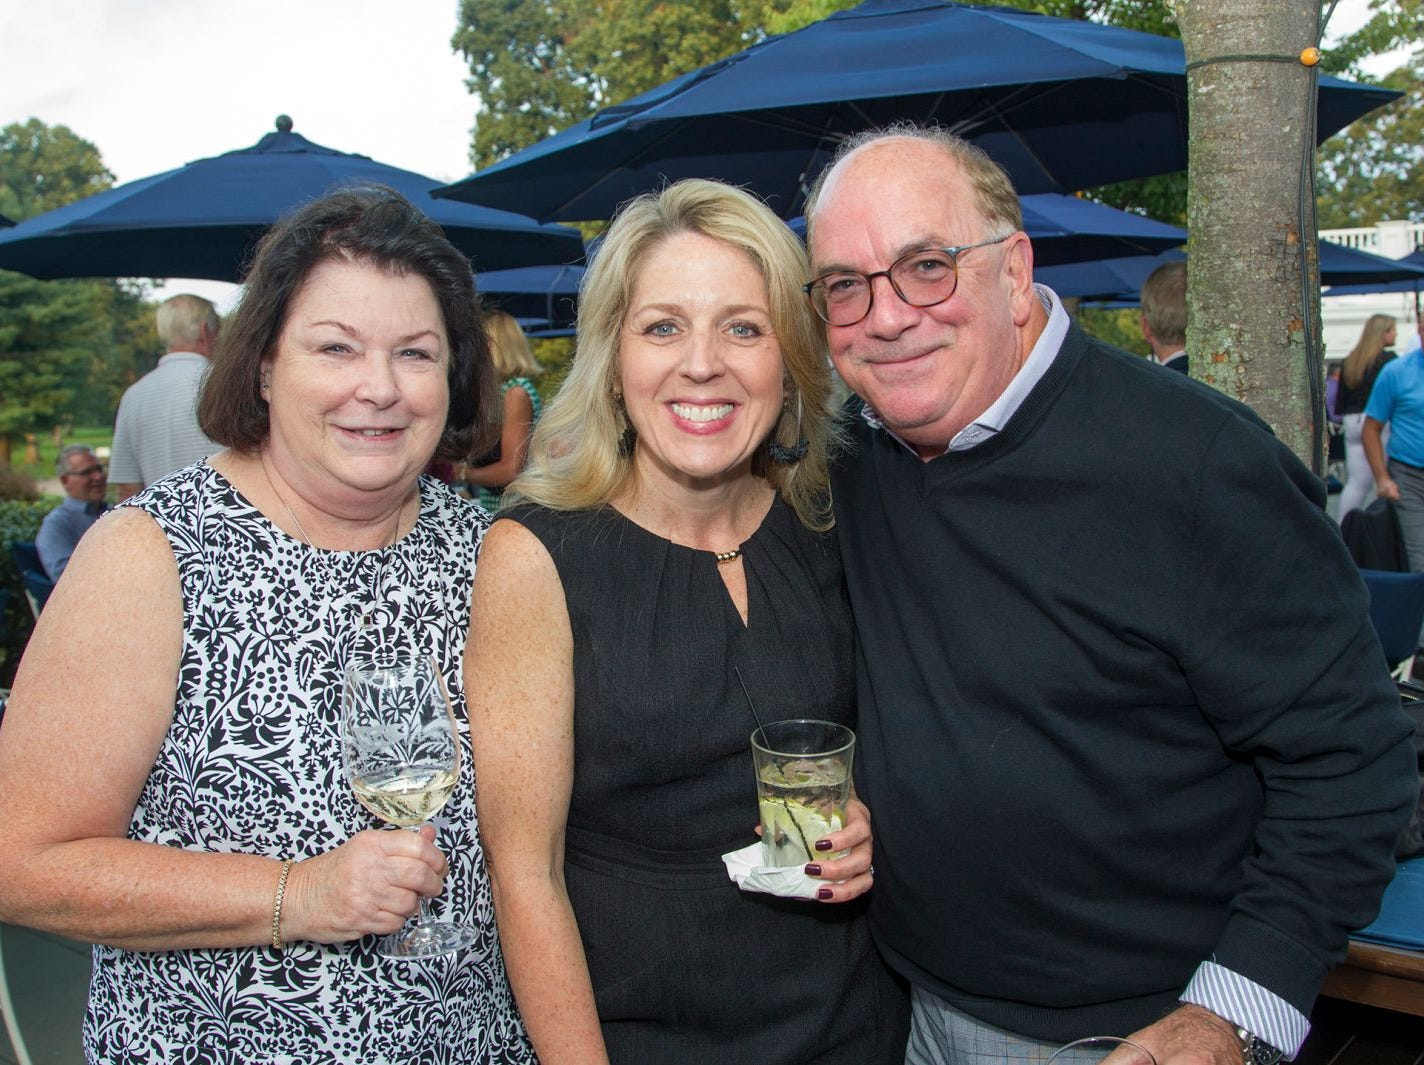 Peg Smith, Maria Bushman, Kevin Mulligan. Institute for Educational Achievement held its 23rd annual Golf Classic at Hackensack Golf Club in Oradell. 10/01/2018